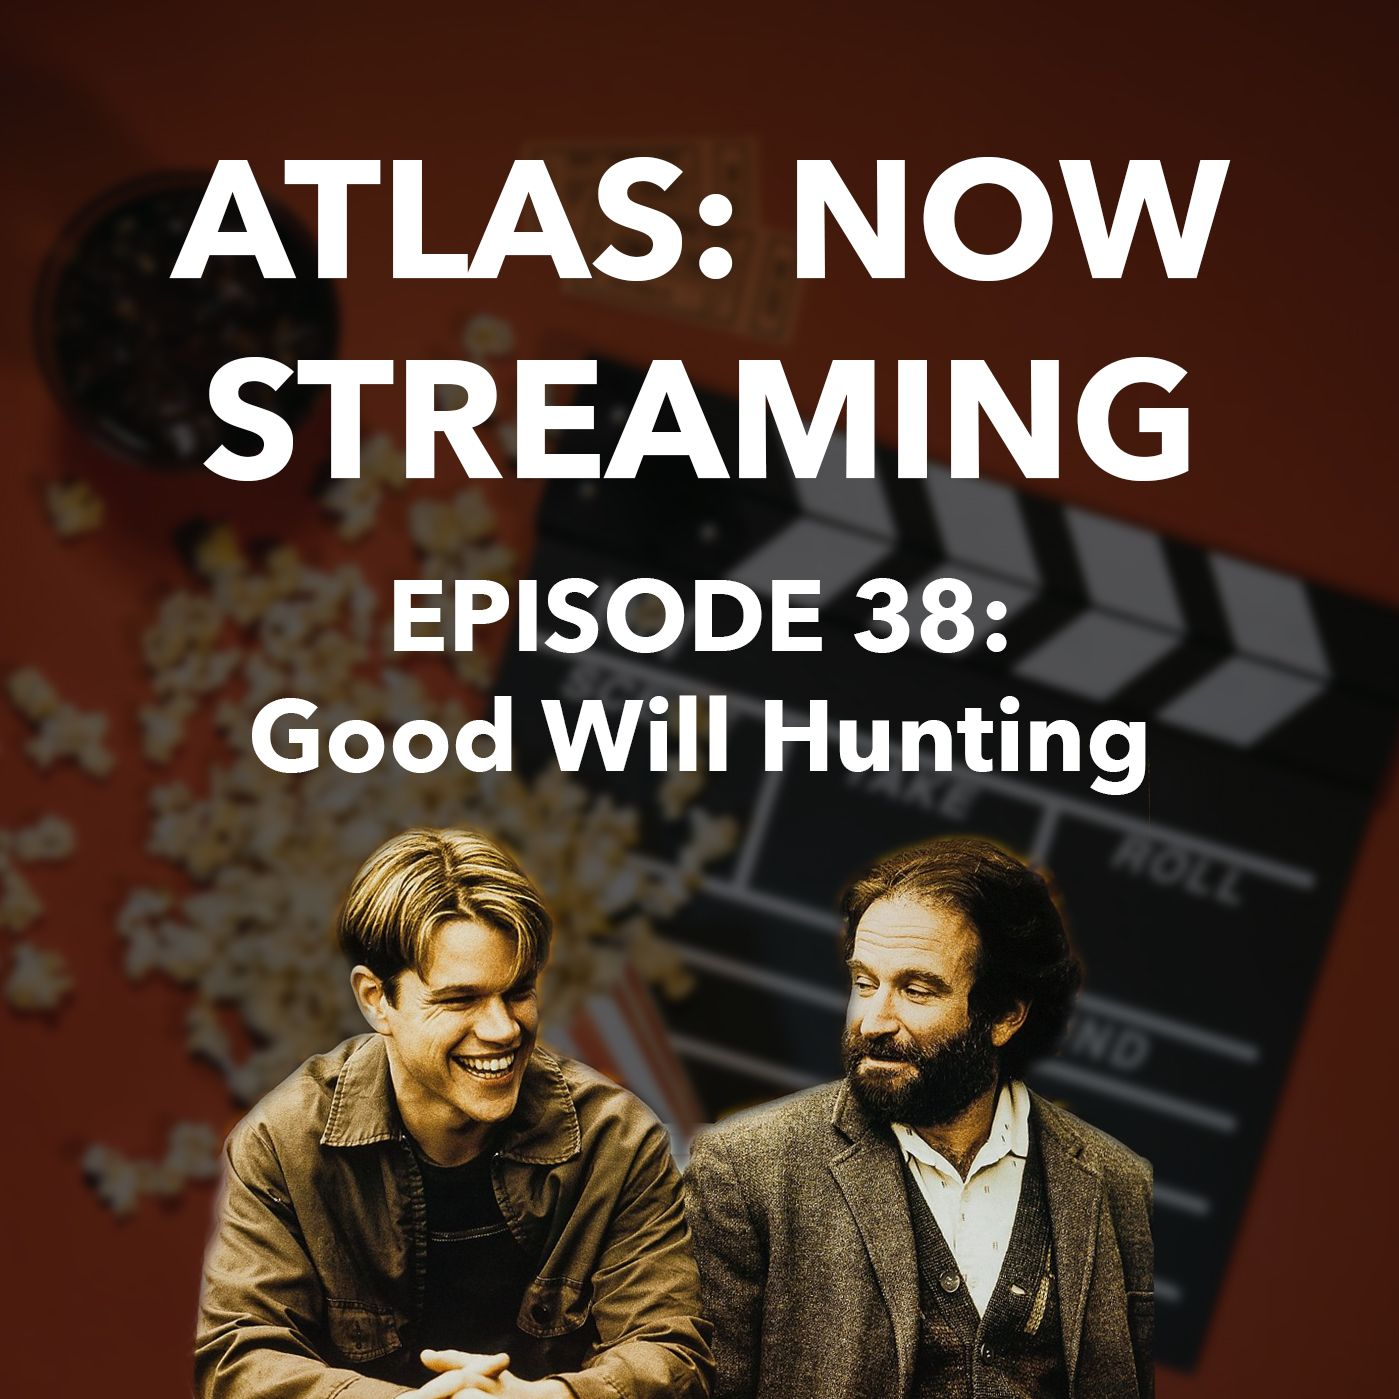 Good Will Hunting - Atlas: Now Streaming Episode 38